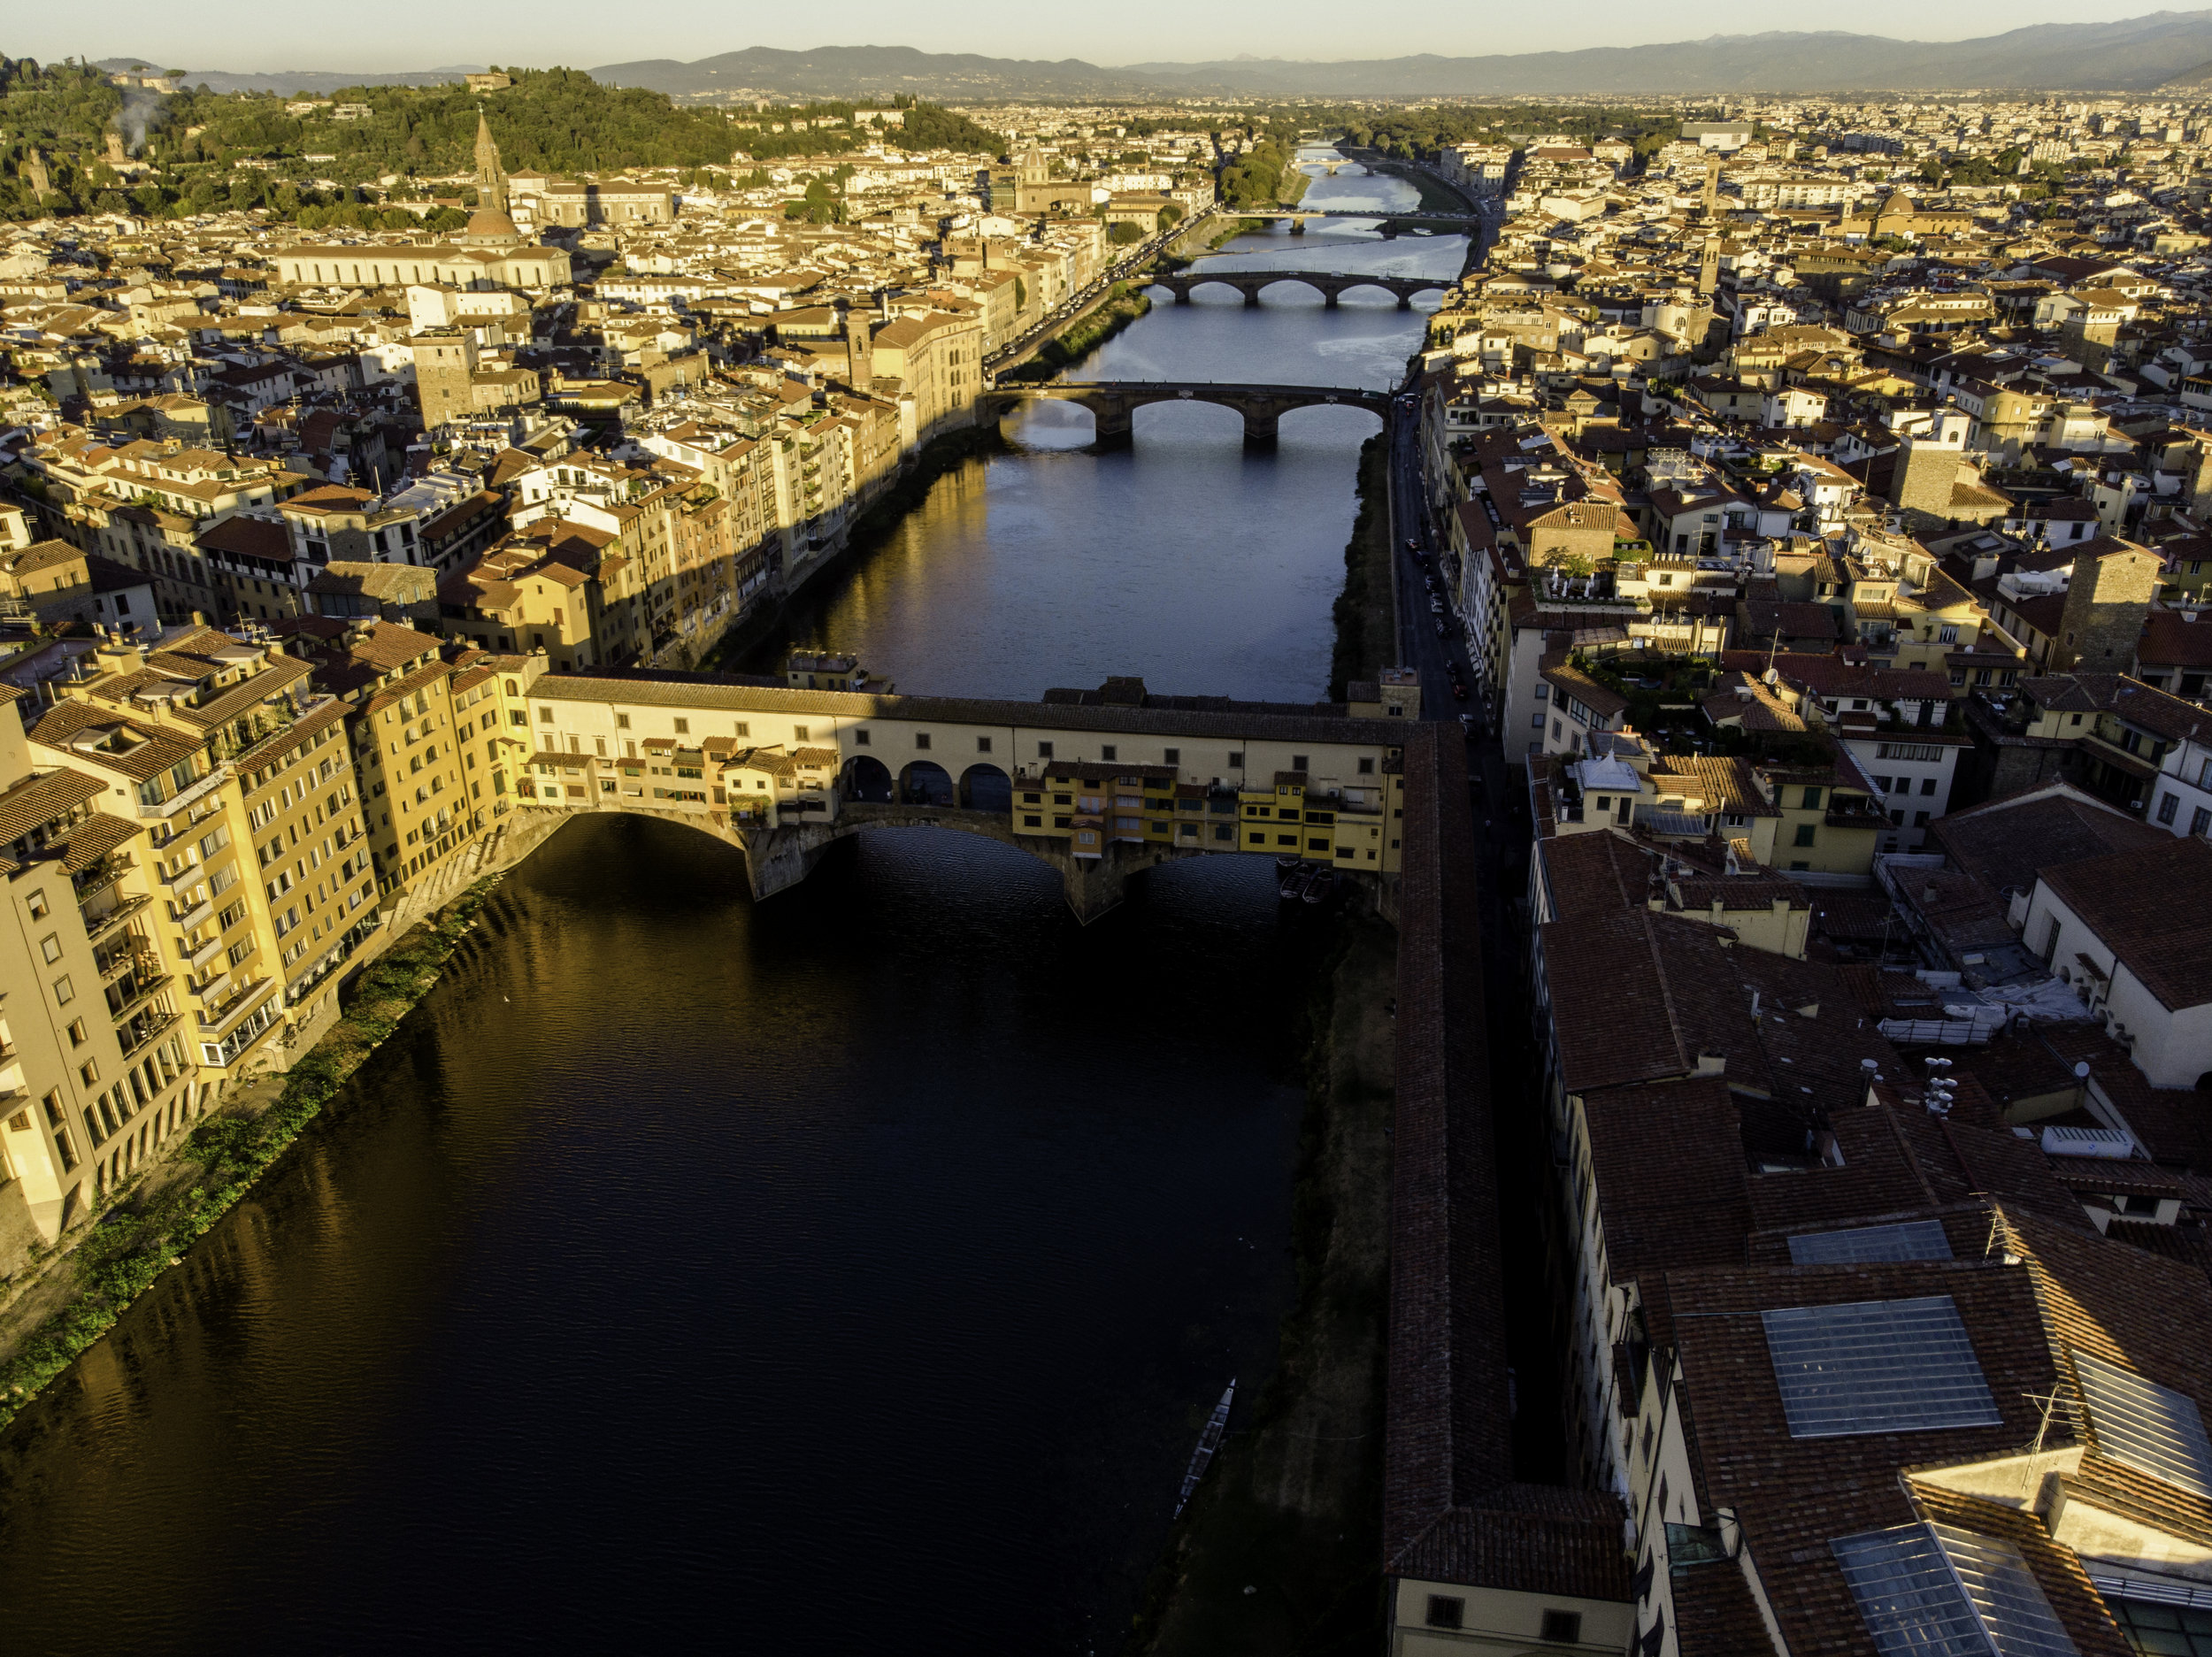 Ponte Vecchio at sunrise. This historic bridge was the only one not blown up by the Nazis as Hitler deemed it too beautiful to destroy. It is famous for its jeweler's shops appearing to hang off the sides of the bridge crossing the Arno. Photo credit: Freethedust